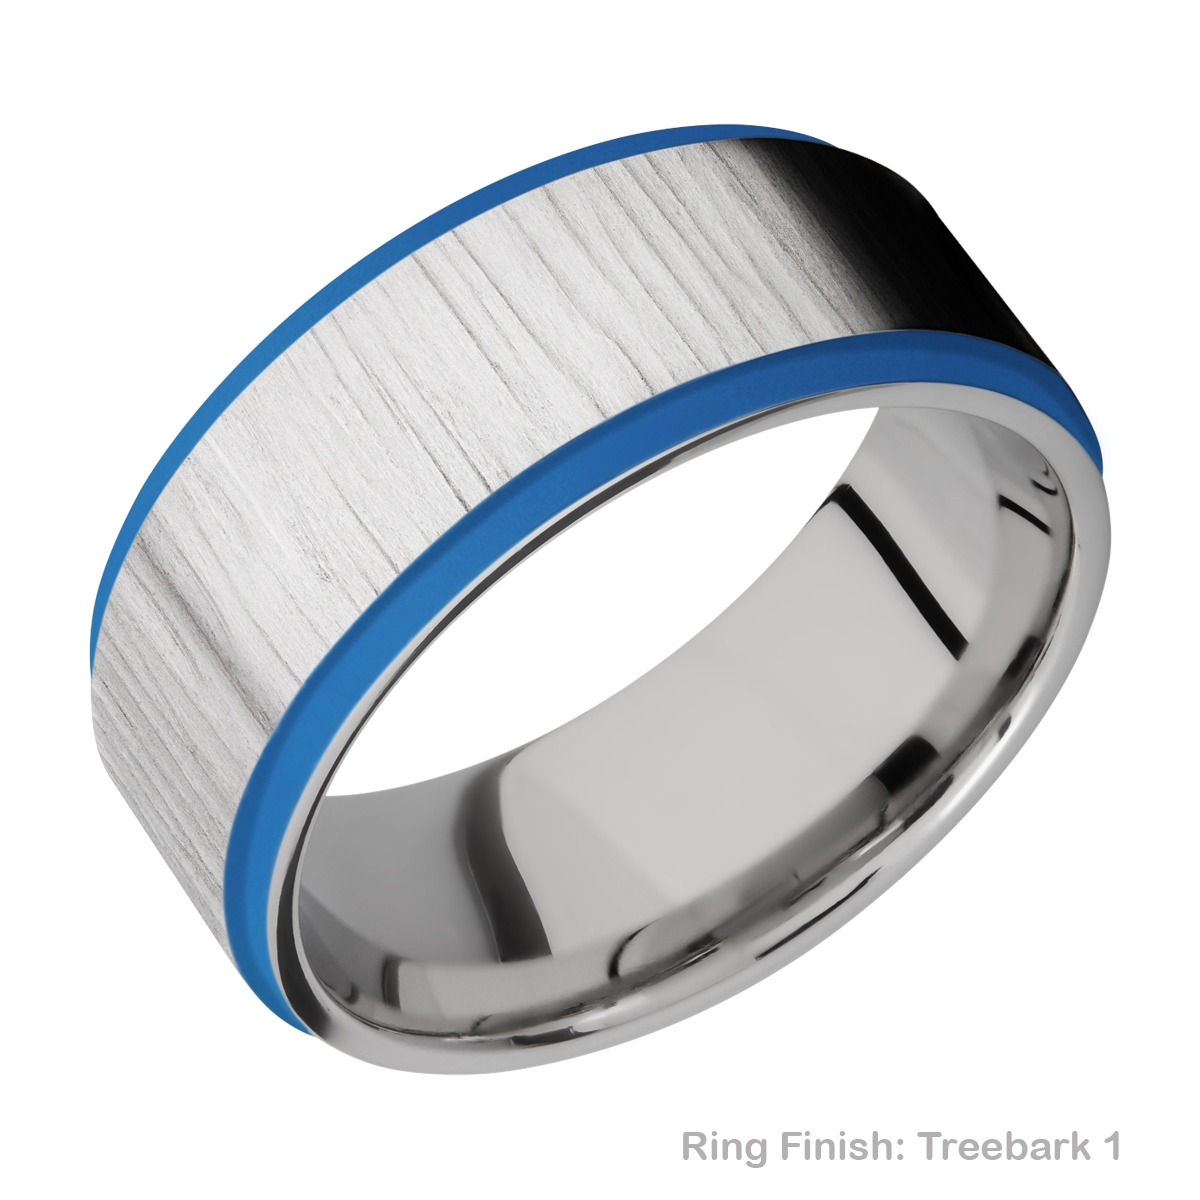 Lashbrook CC10FGE21EDGE/A/CERAKOTE Cobalt Chrome Wedding Ring or Band Alternative View 11